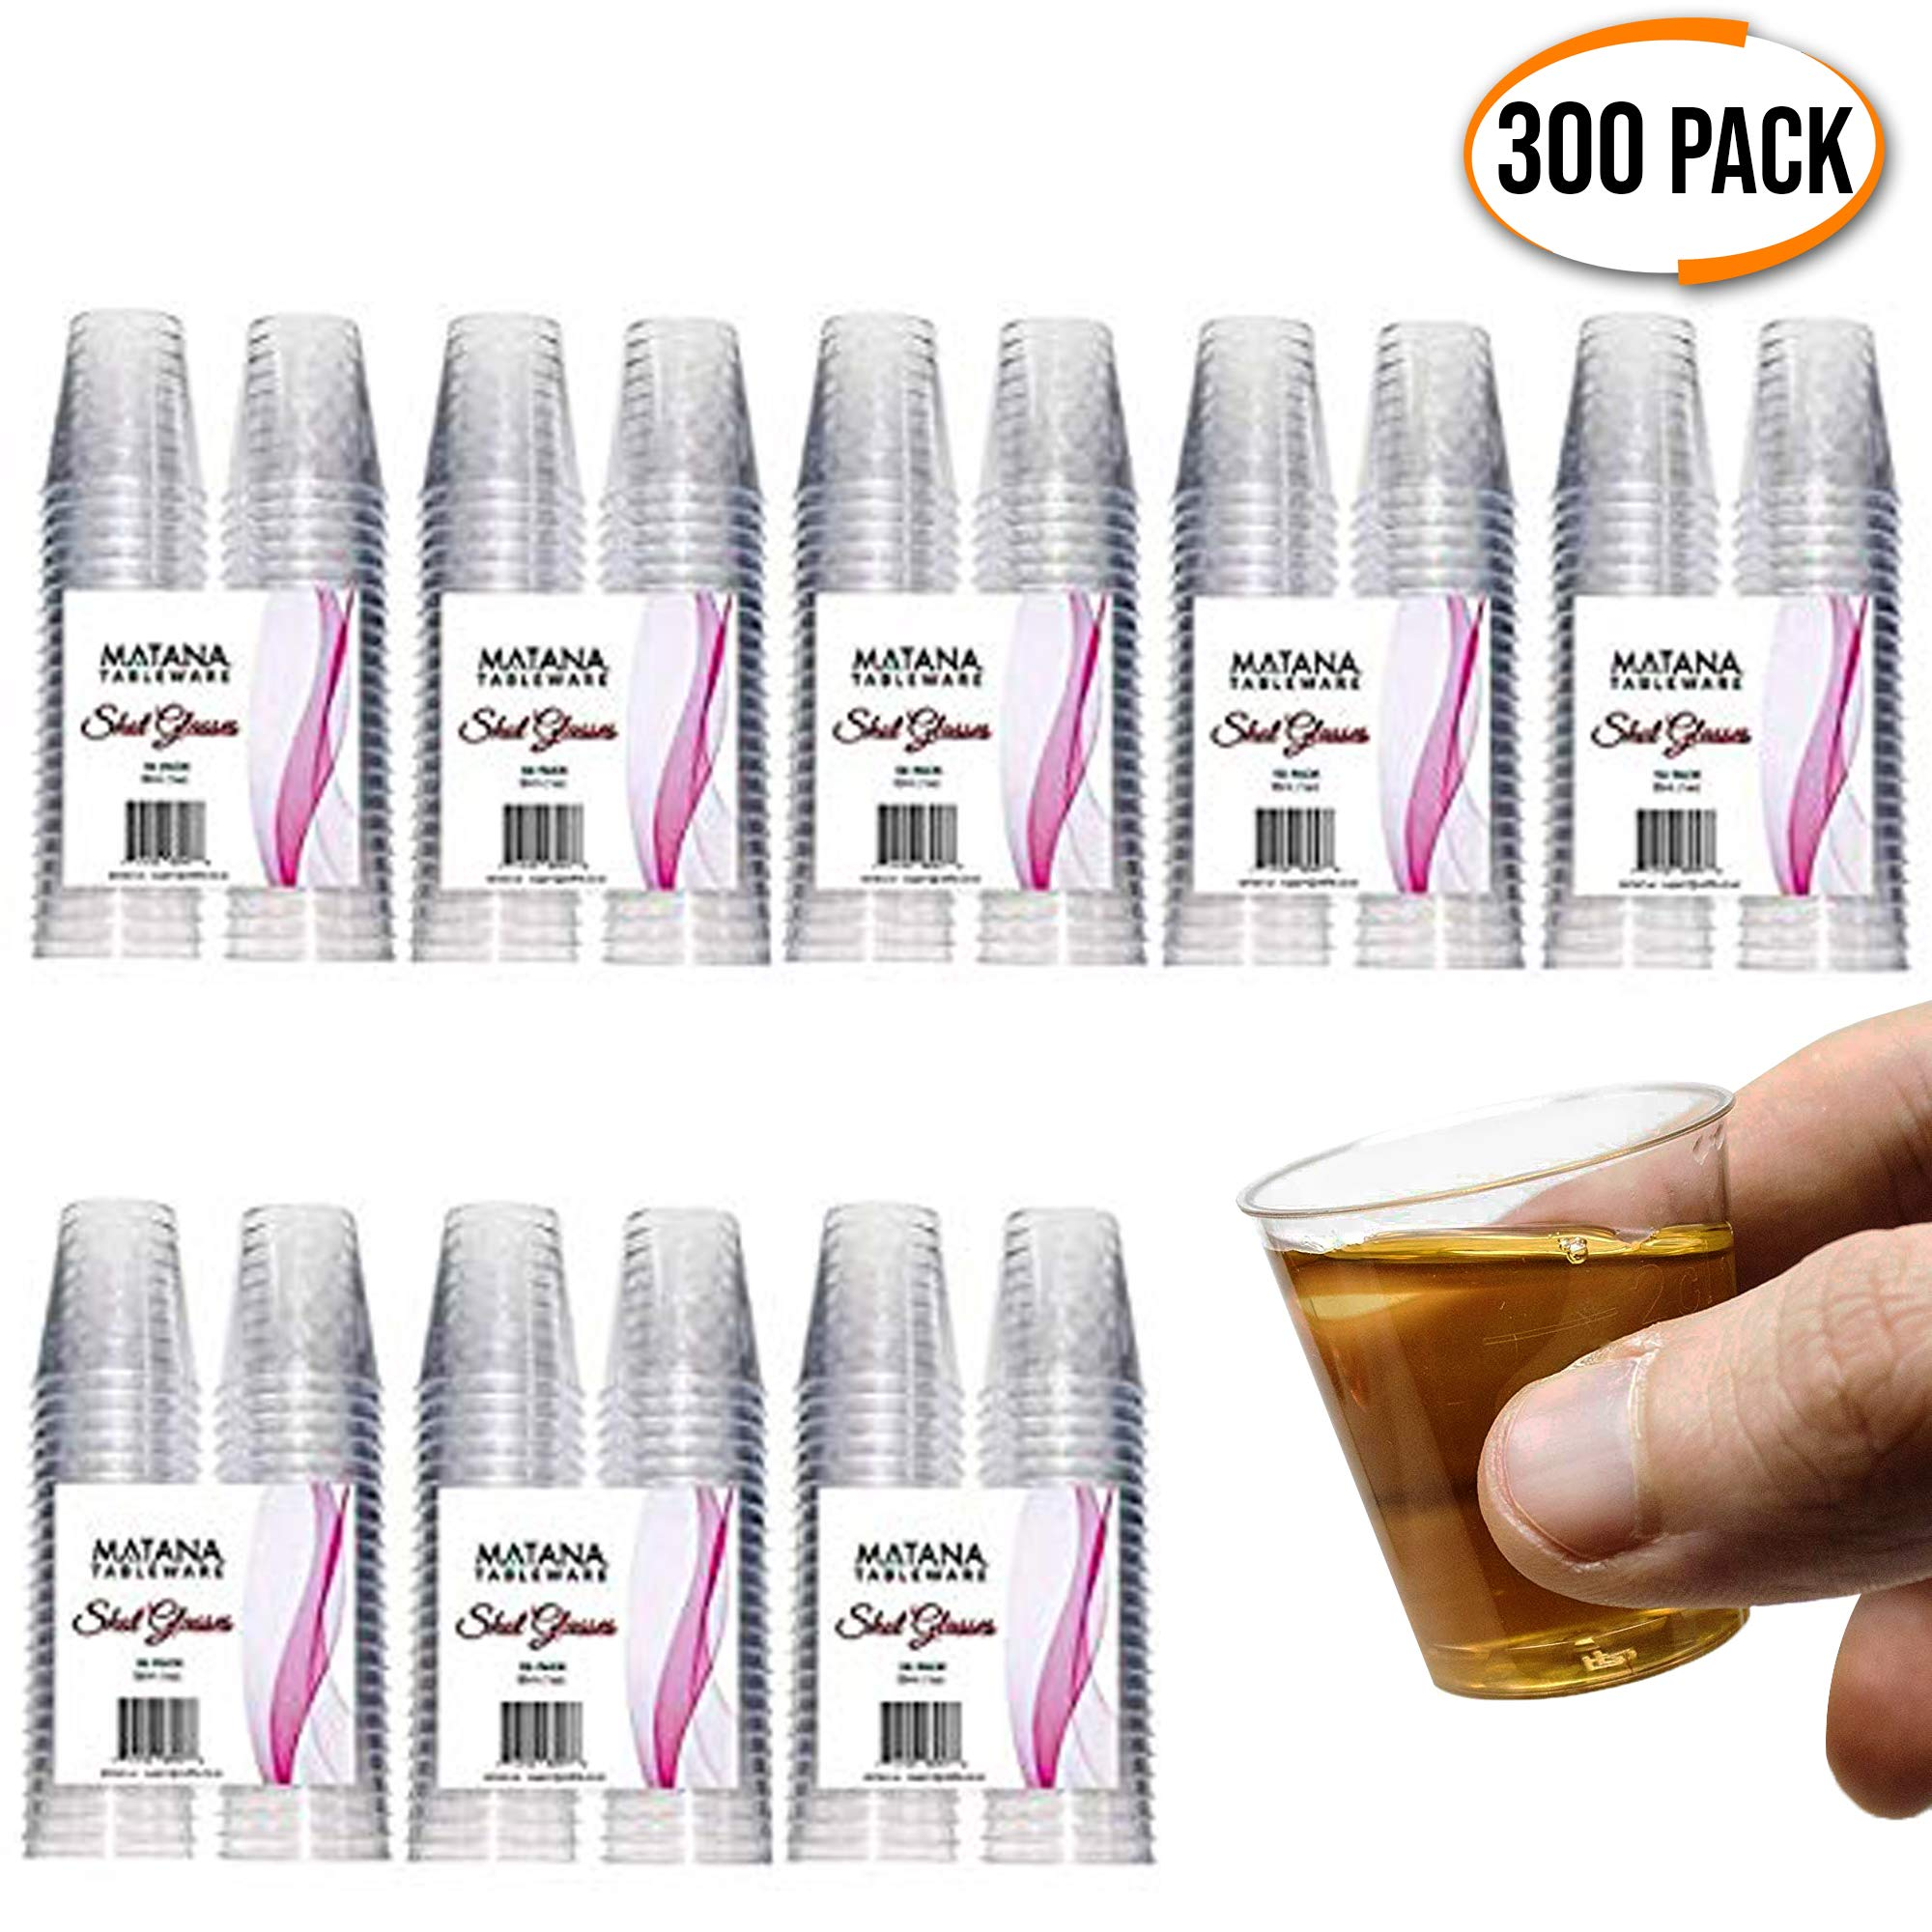 300 Disposable Plastic Shot Glasses, 1oz(30ml) - Crystal Clear, Heavy Duty, Shatterproof & Reusable Shot Cups - for Shots, Vodka Jelly, Weddings, Dinners, Christmas, New Year - 100% Recyclable by Matana